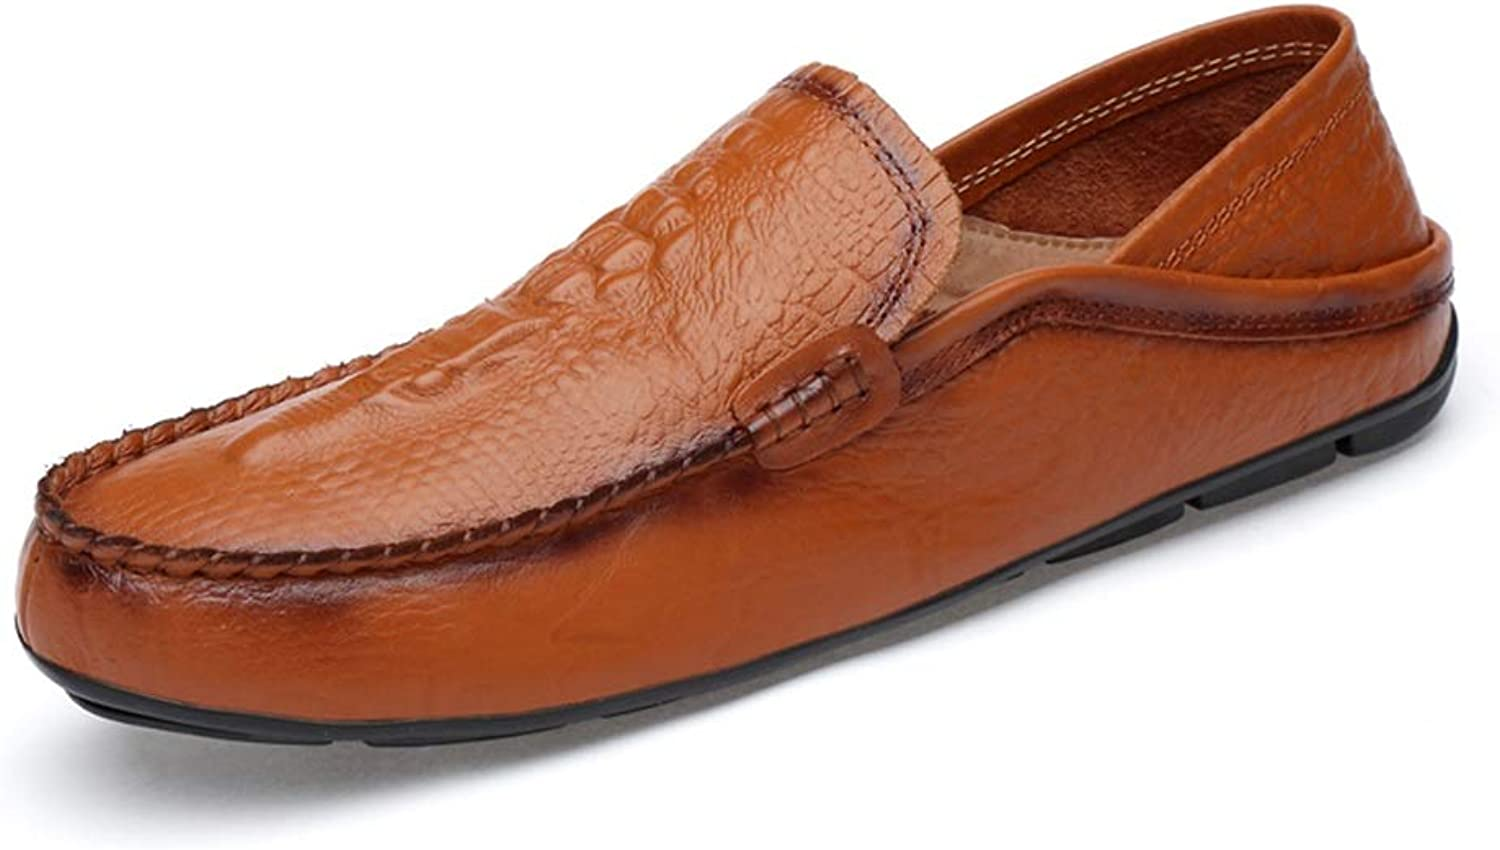 MUMUWU Oxford shoes Casual Dress Boat shoes for Men Breathable Loafers Flat Leather Upper Hand-Made Slip On (color   Reddish Brown, Size   9.5 D(M) US)